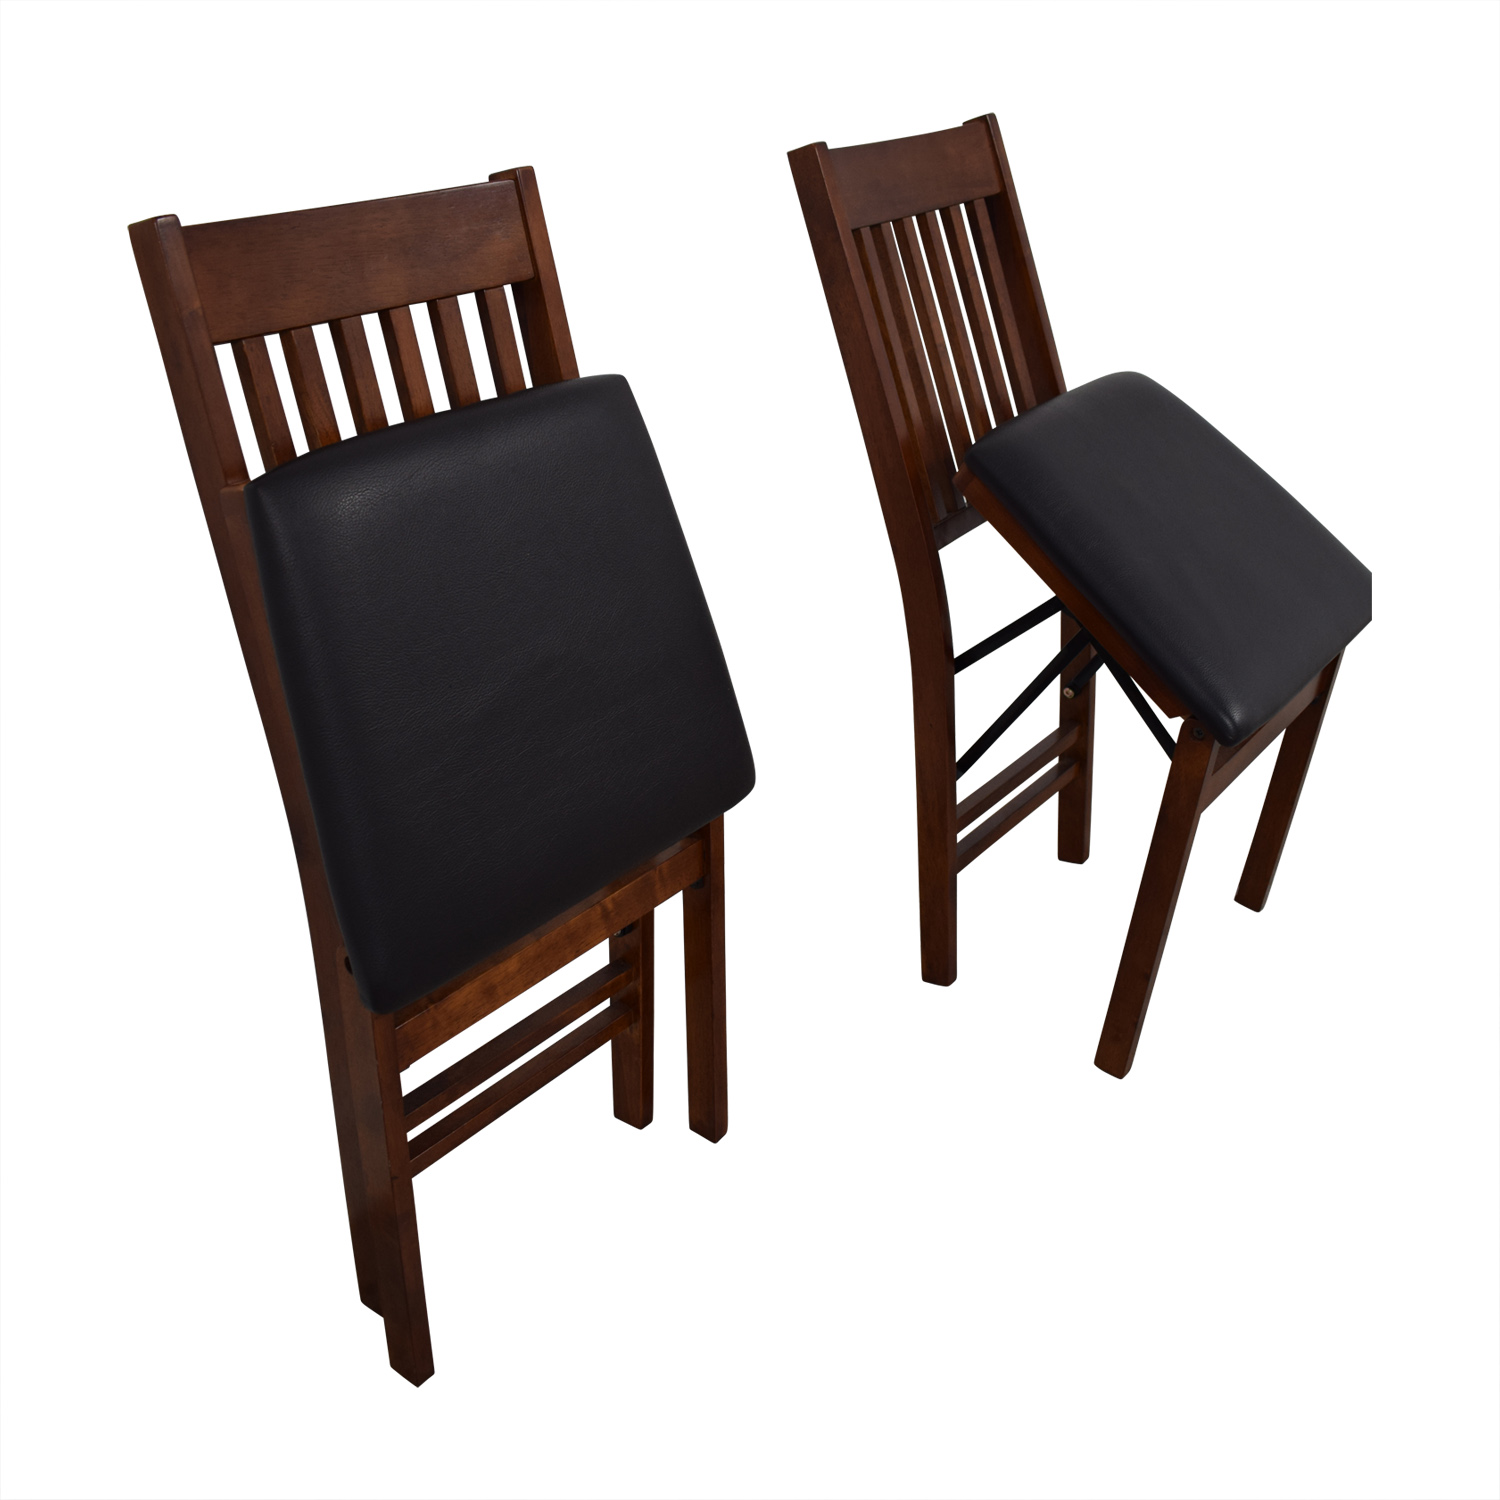 Outstanding 55 Off Linon Home Decor Linon Home Decor Mission Back Wood Folding Chairs Chairs Interior Design Ideas Oxytryabchikinfo